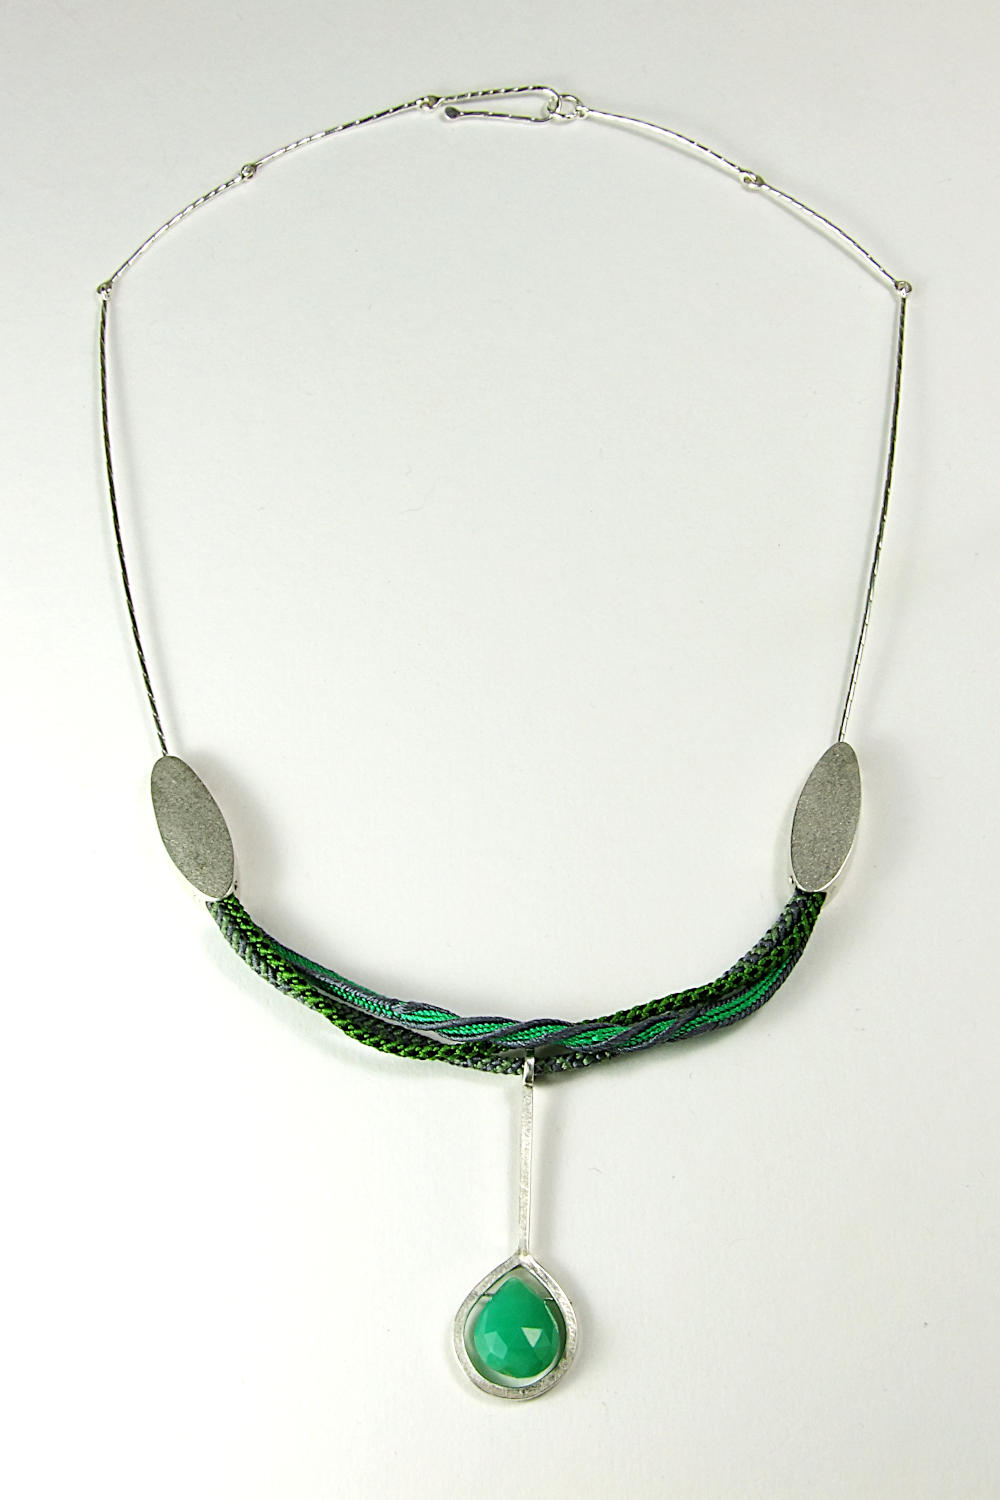 Full view of necklace.